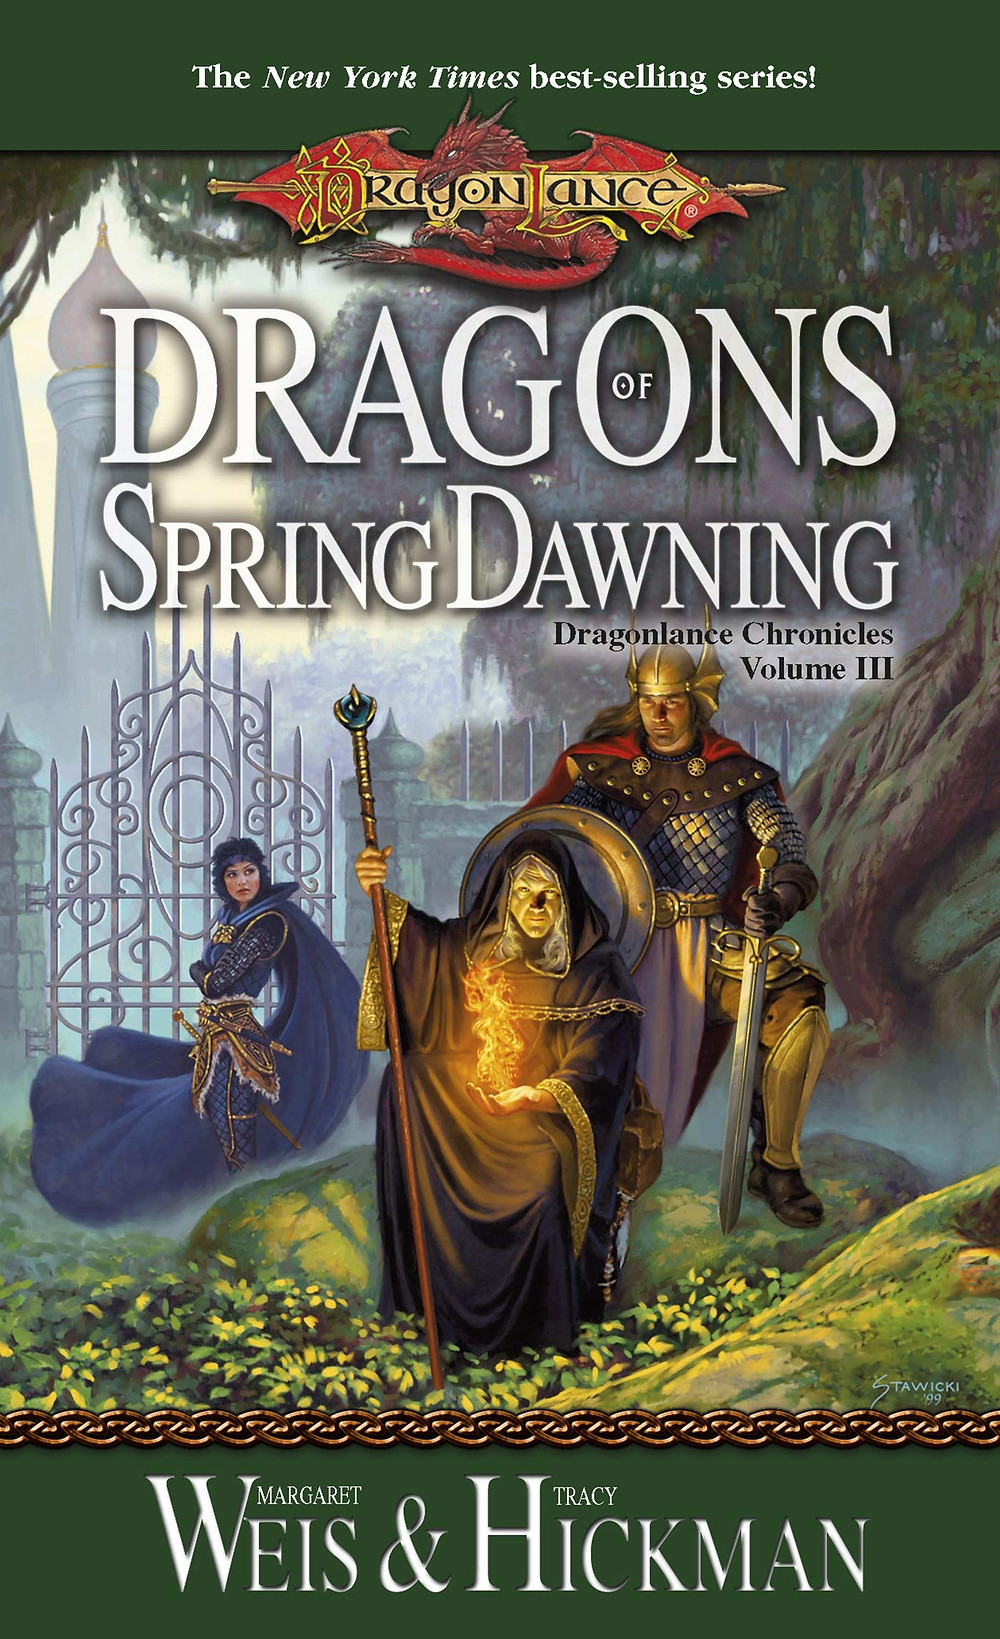 Book Review - Dragons of Spring Dawning by Margaret Weis and Tracy Hickman